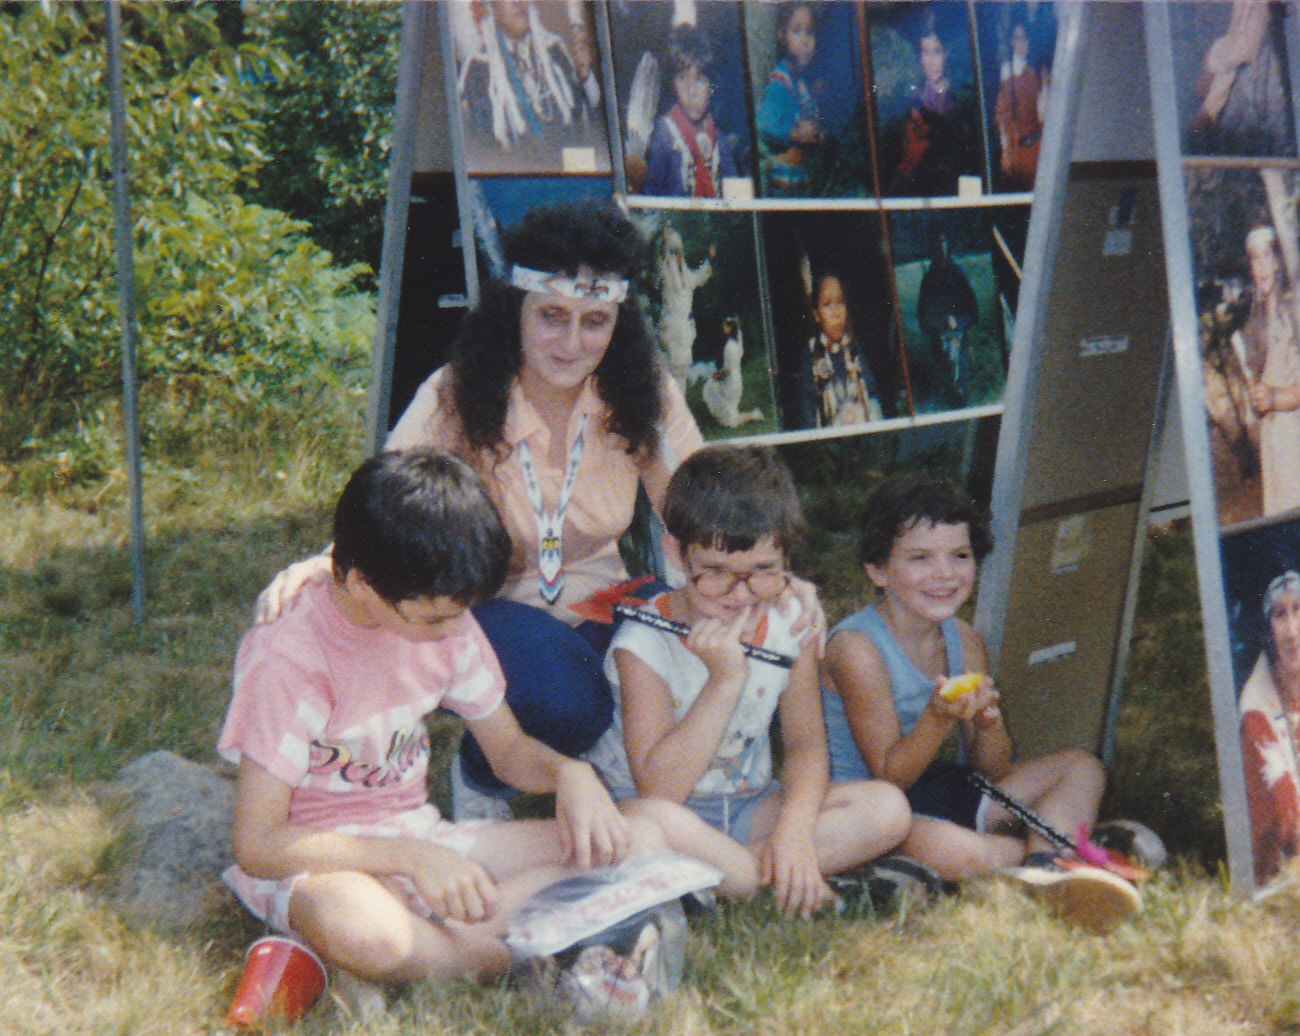 Mom with Steven, Sonny, and Anthony at the Pow-Wow